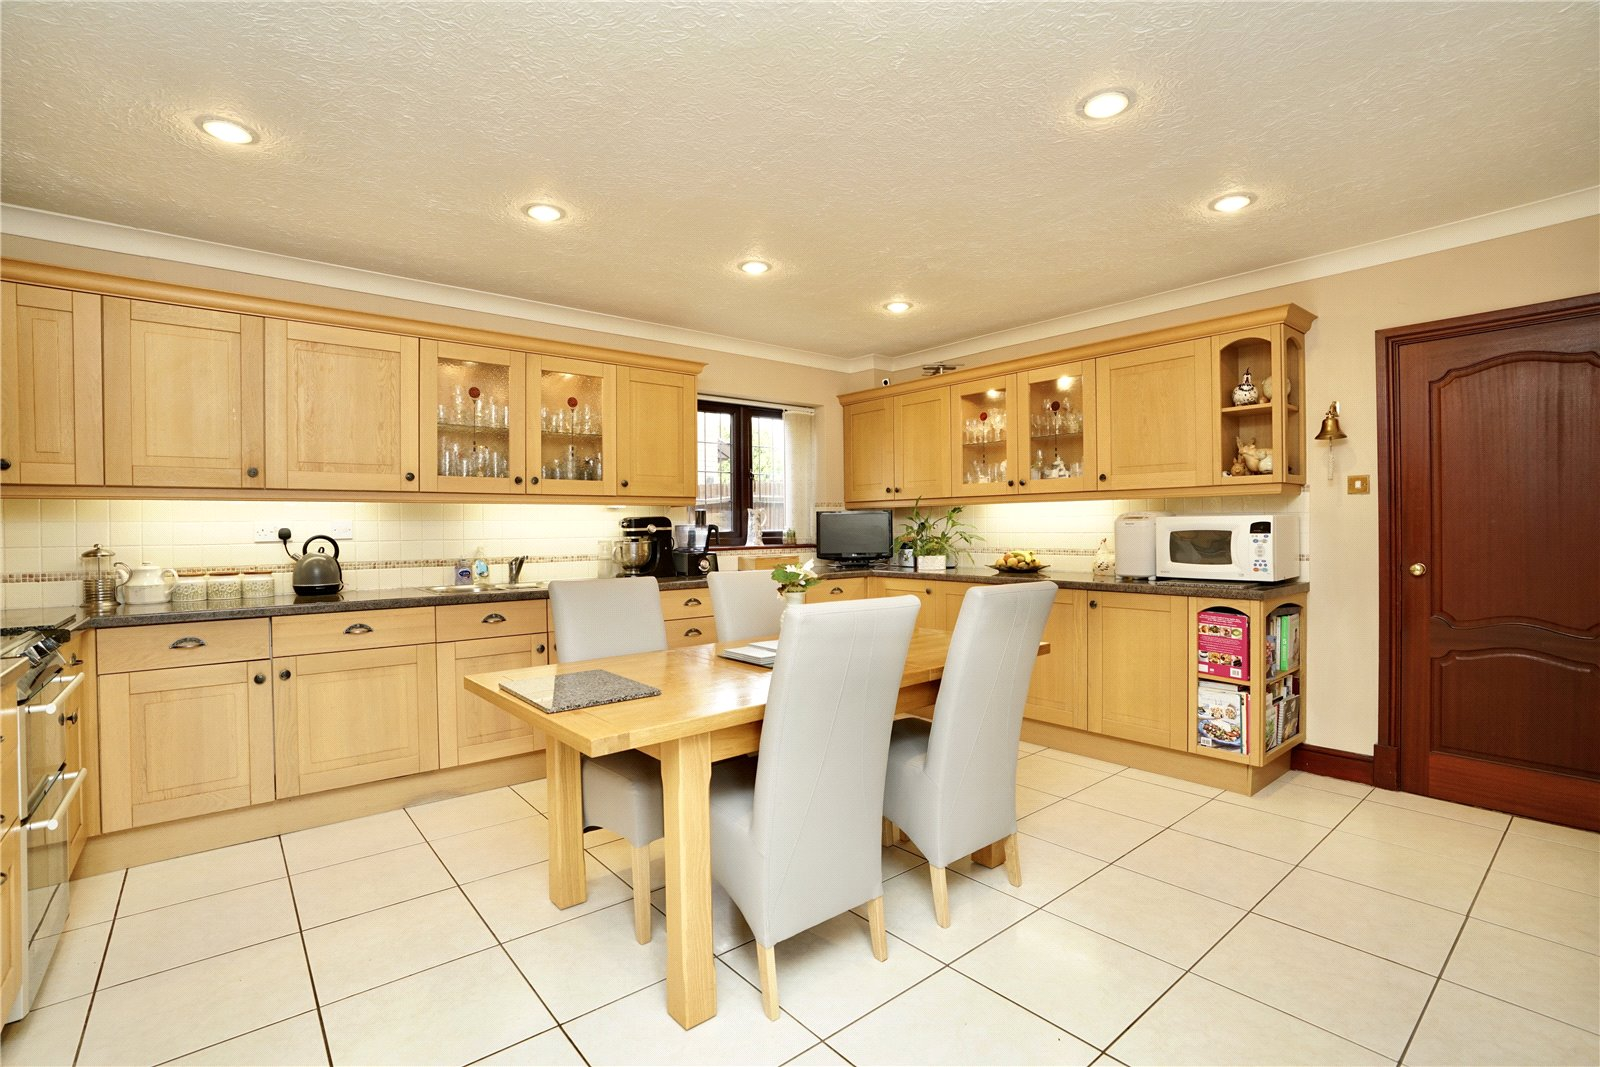 5 bed house for sale in Great North Road, Eaton Ford 1